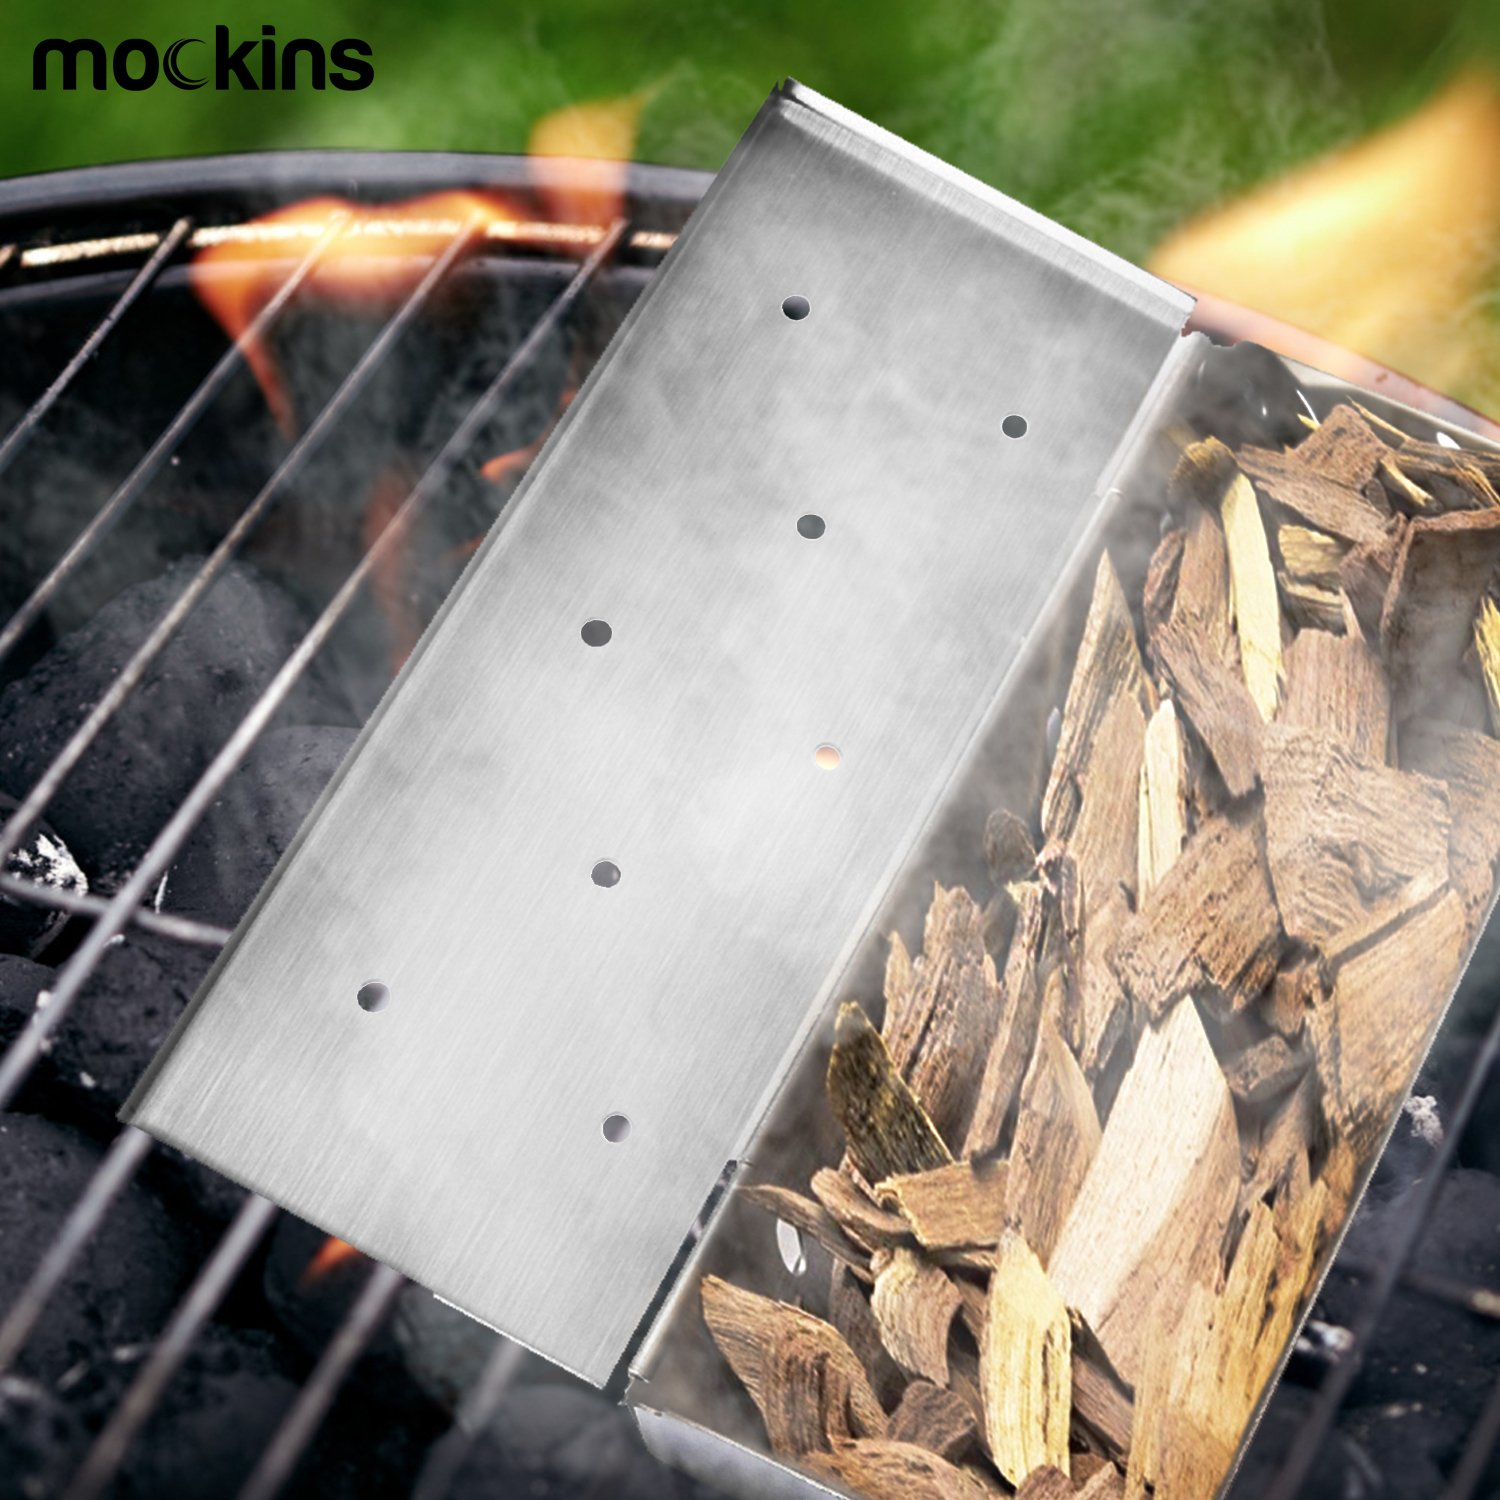 Mockins Even Thicker Stainless Steel BBQ Smoker Box for Grilling Barbecue Wood Chips On Gas Or Charcoal Grill … … by Mockins (Image #2)